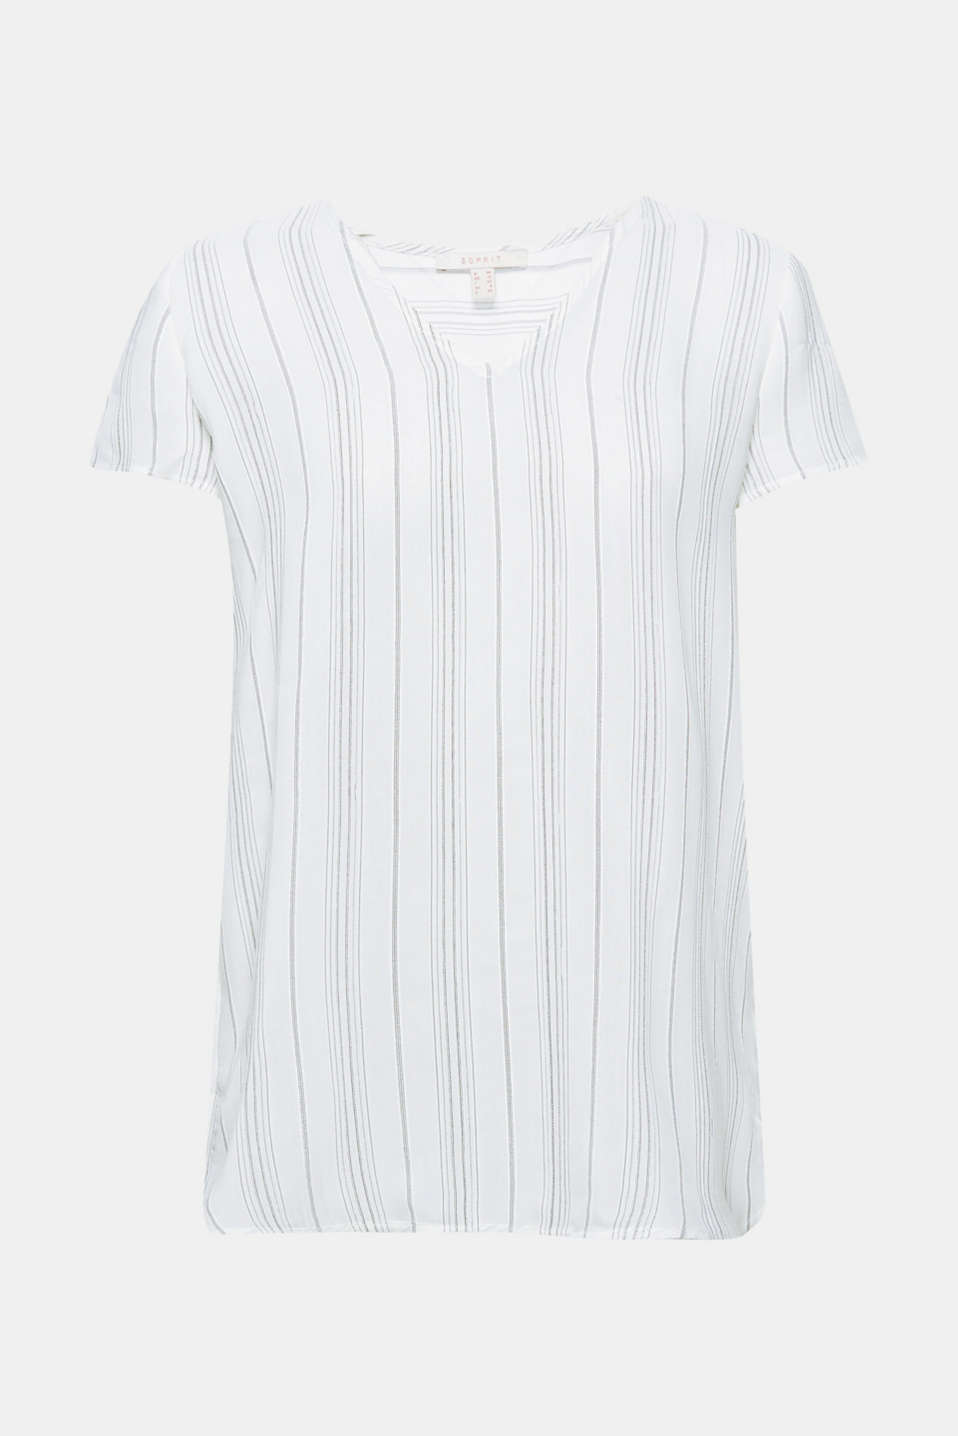 This sheer blouse top is casual like a shirt and delicate like a blouse with its fine striped pattern, v-neckline and high-low hem.